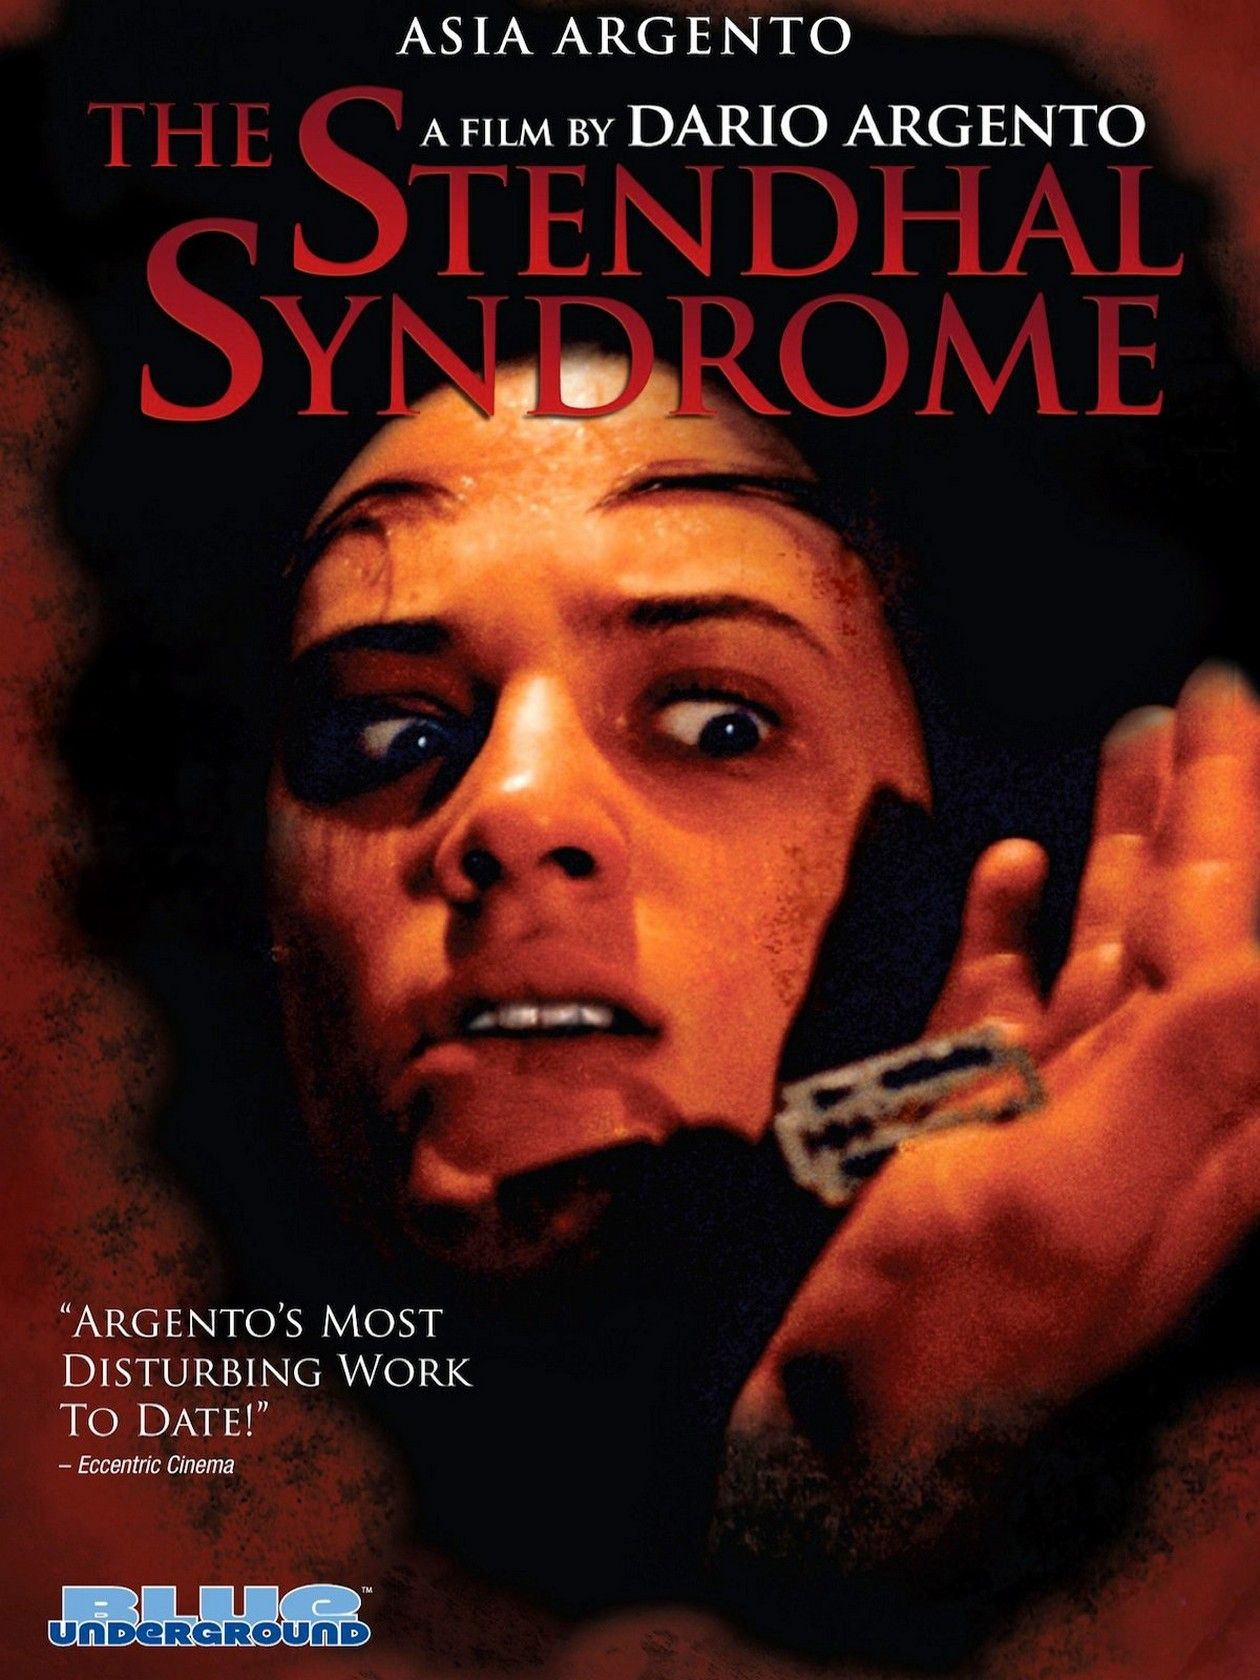 Asia Argento actress | La Sindrome di Stendhal / The Stendhal Syndrome / Le Syndrome de Stendhal / DARIO ARGENTO 1996 Movie Poster Affiche film